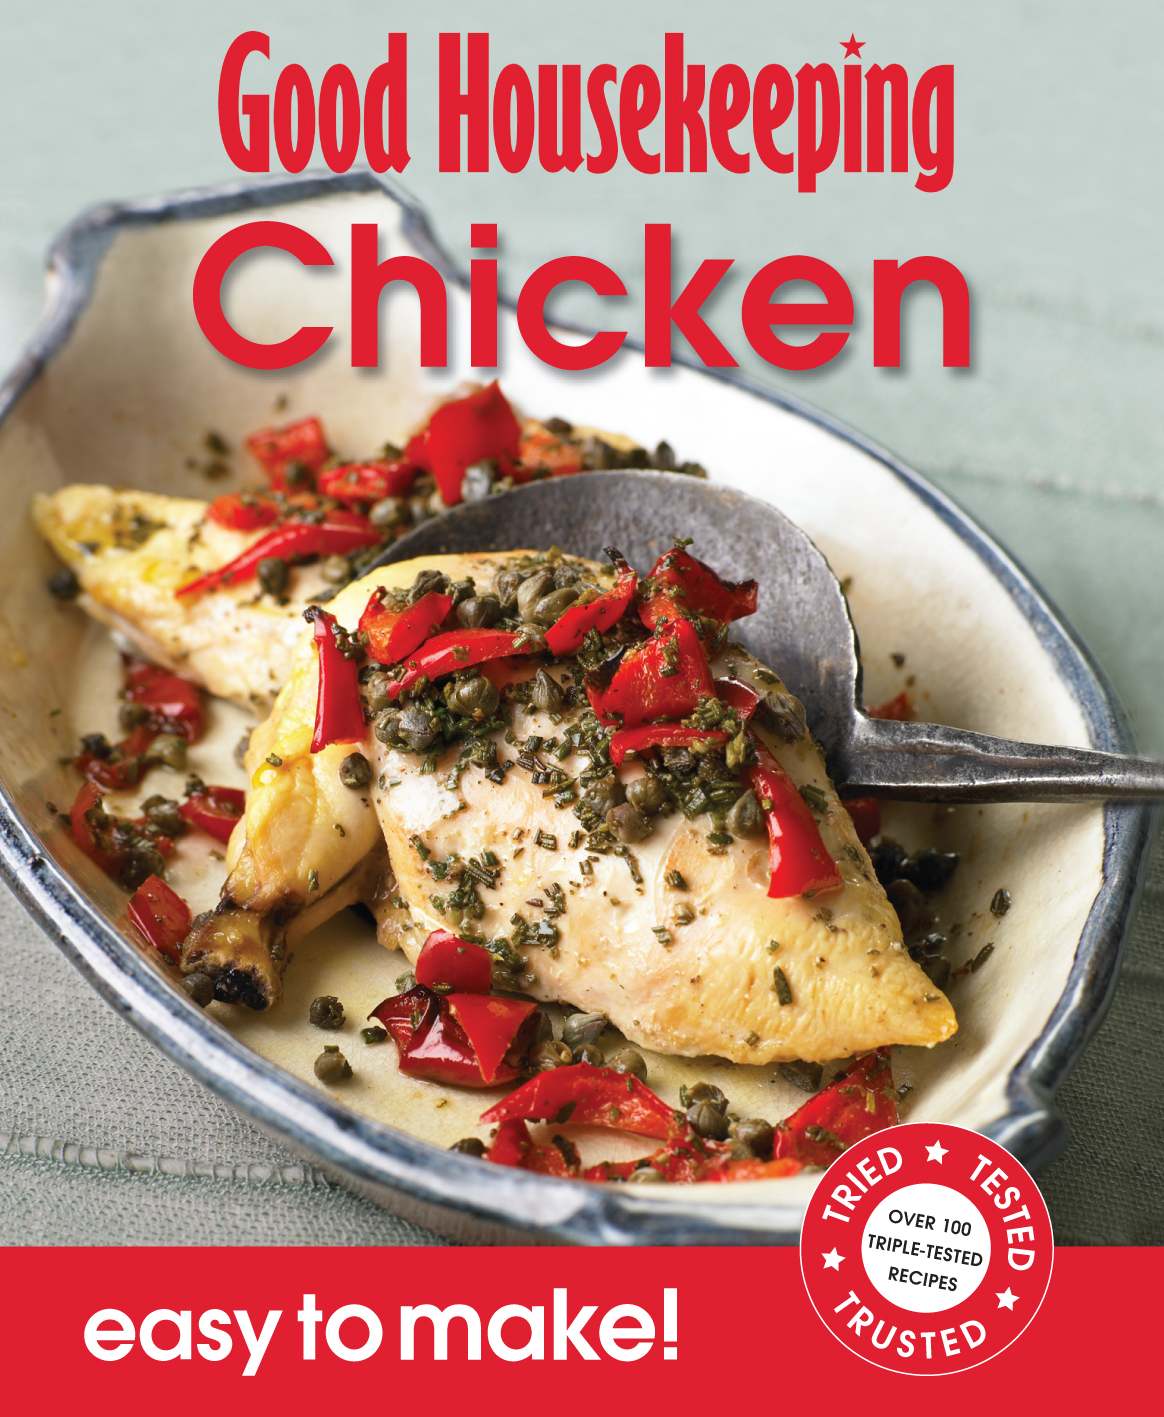 Good Housekeeping Easy to Make! Chicken